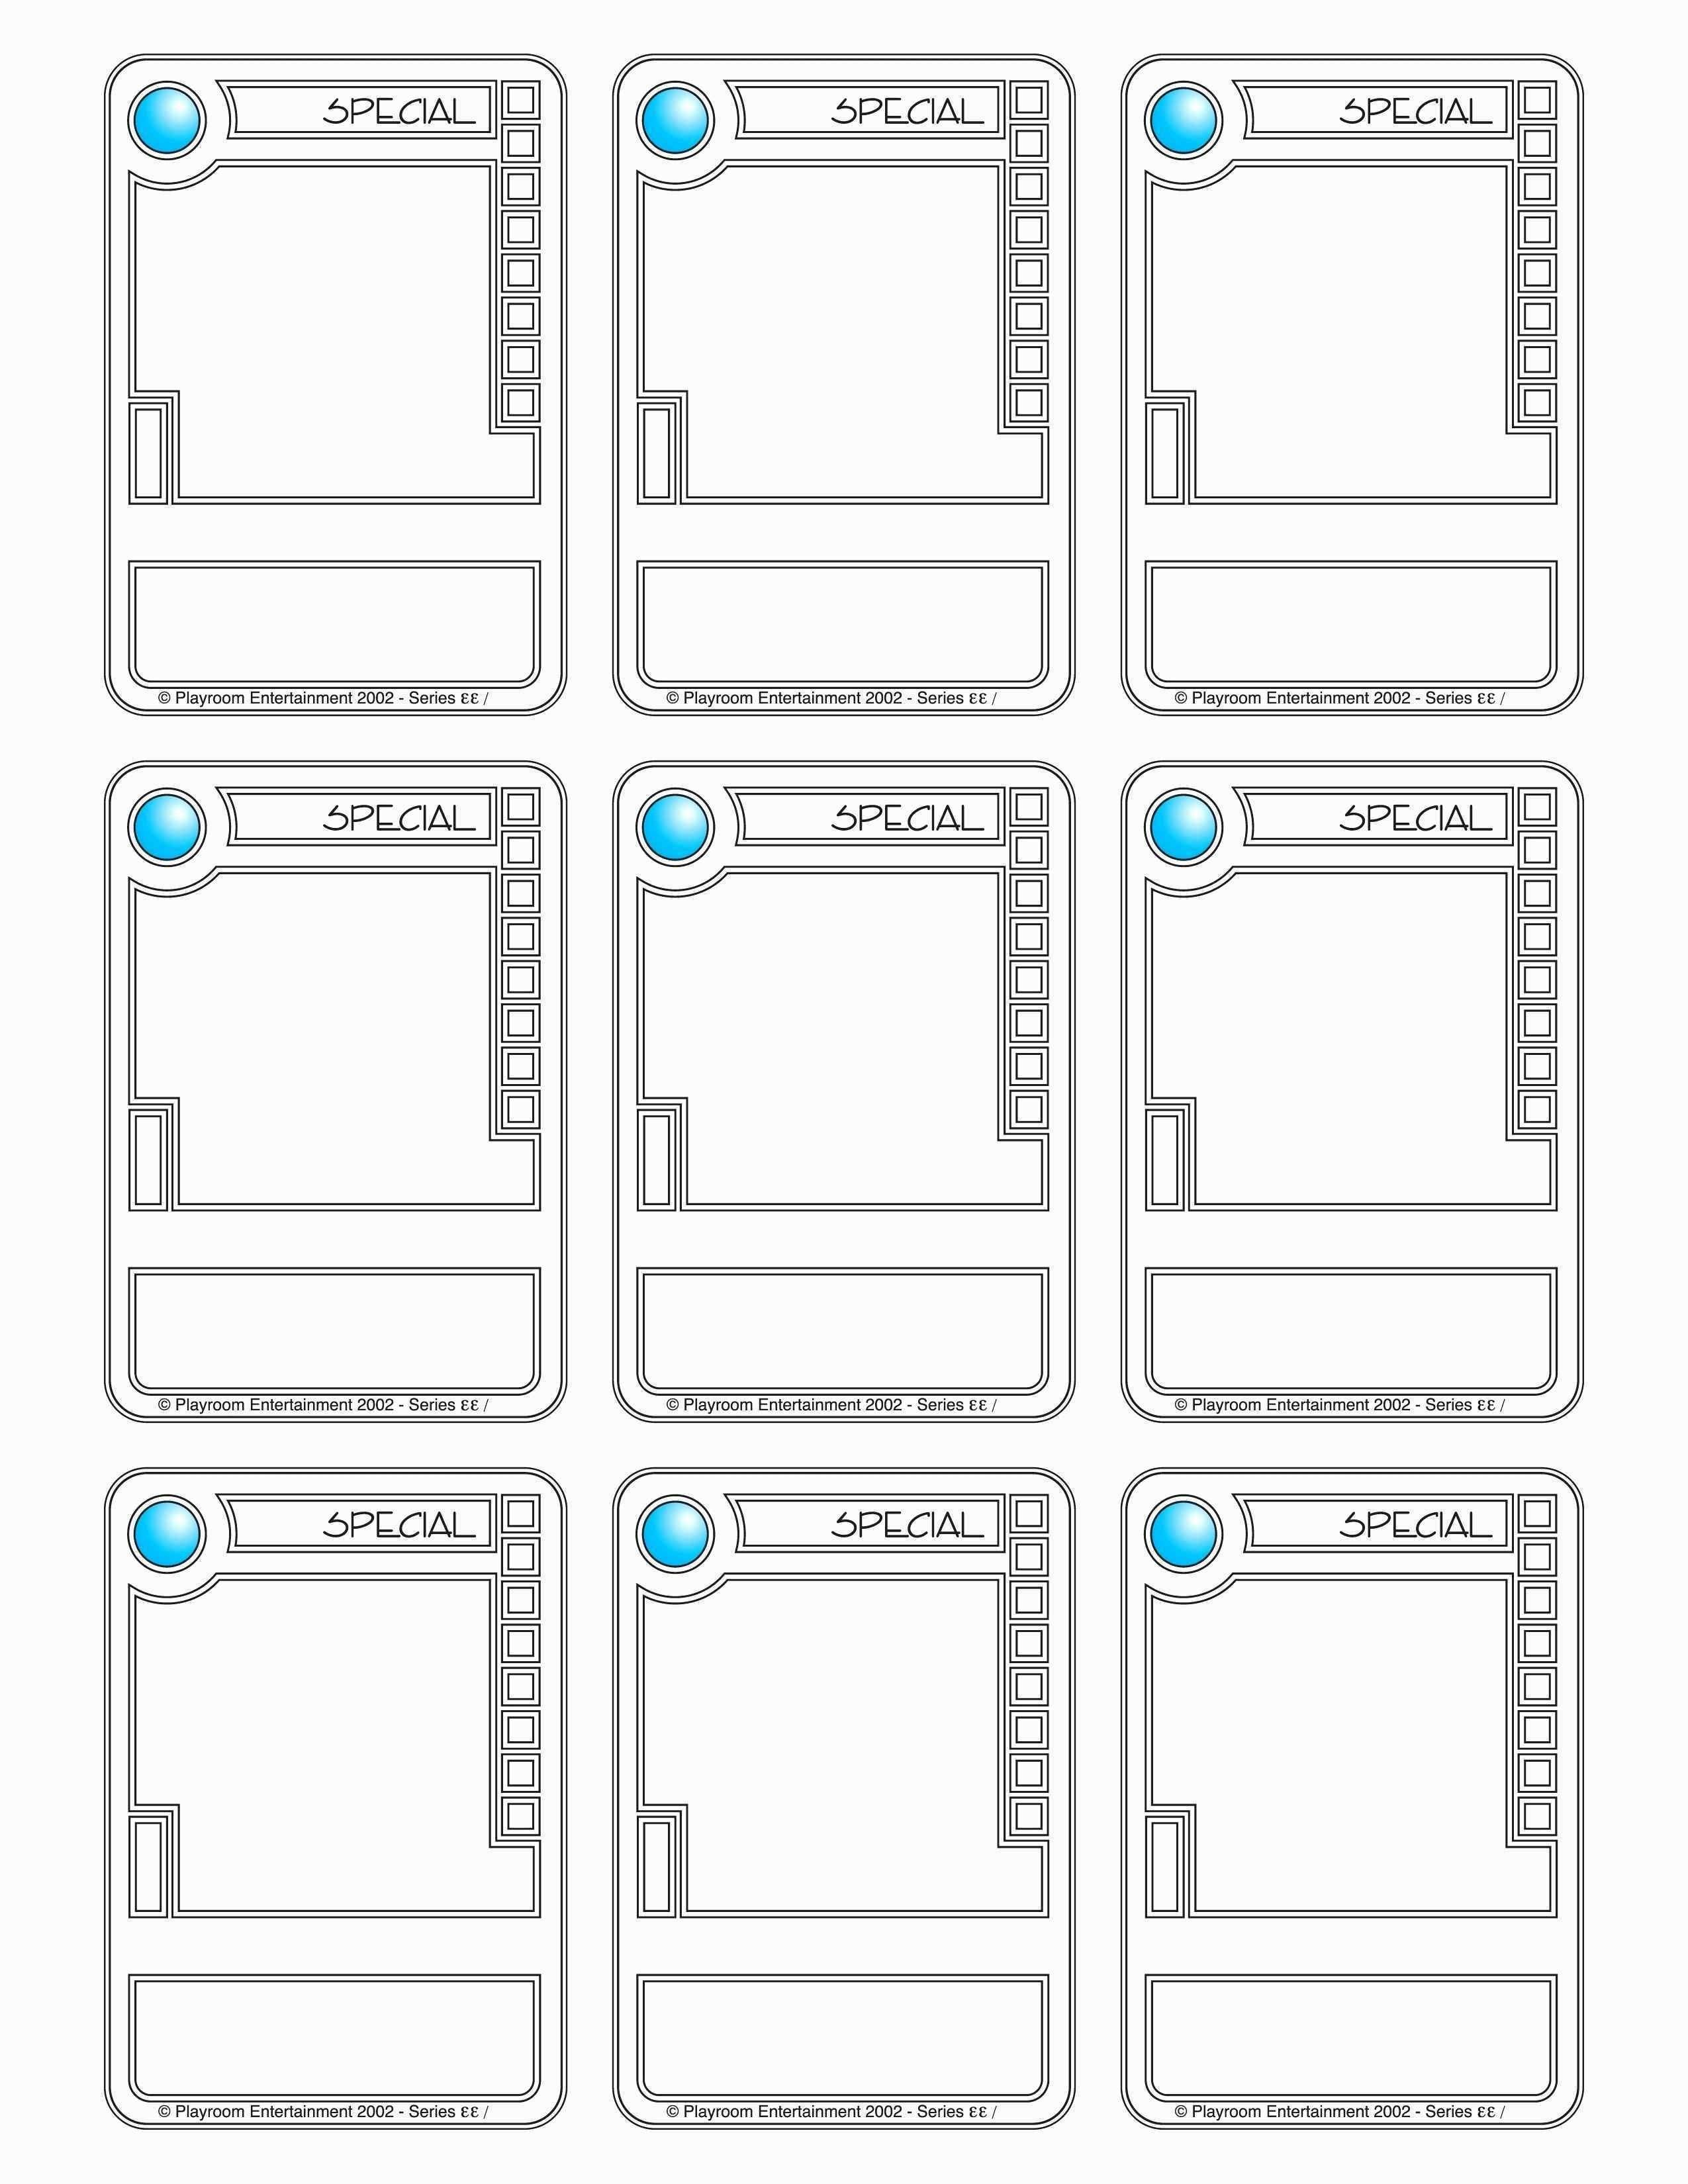 001 examples free trading card template maker for success